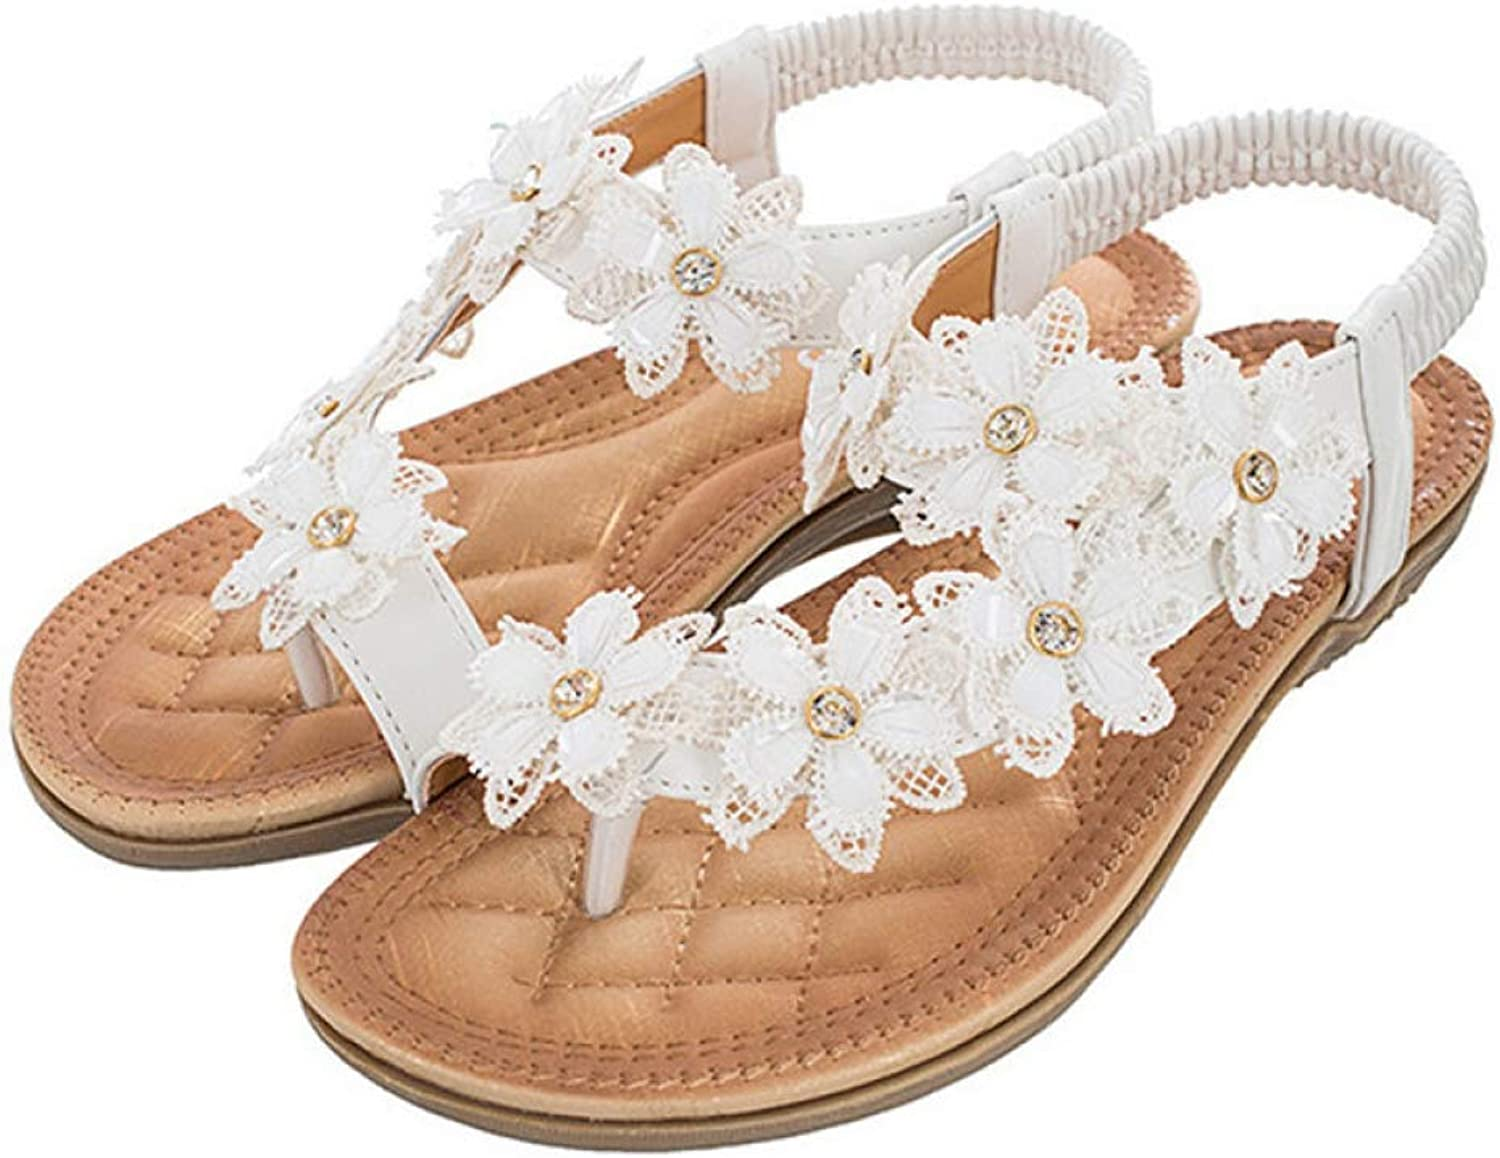 T-JULY Women Sandals Summer Boximiya Style White color Sweet Floral Beaches Crystal Flip Flops Women Flats